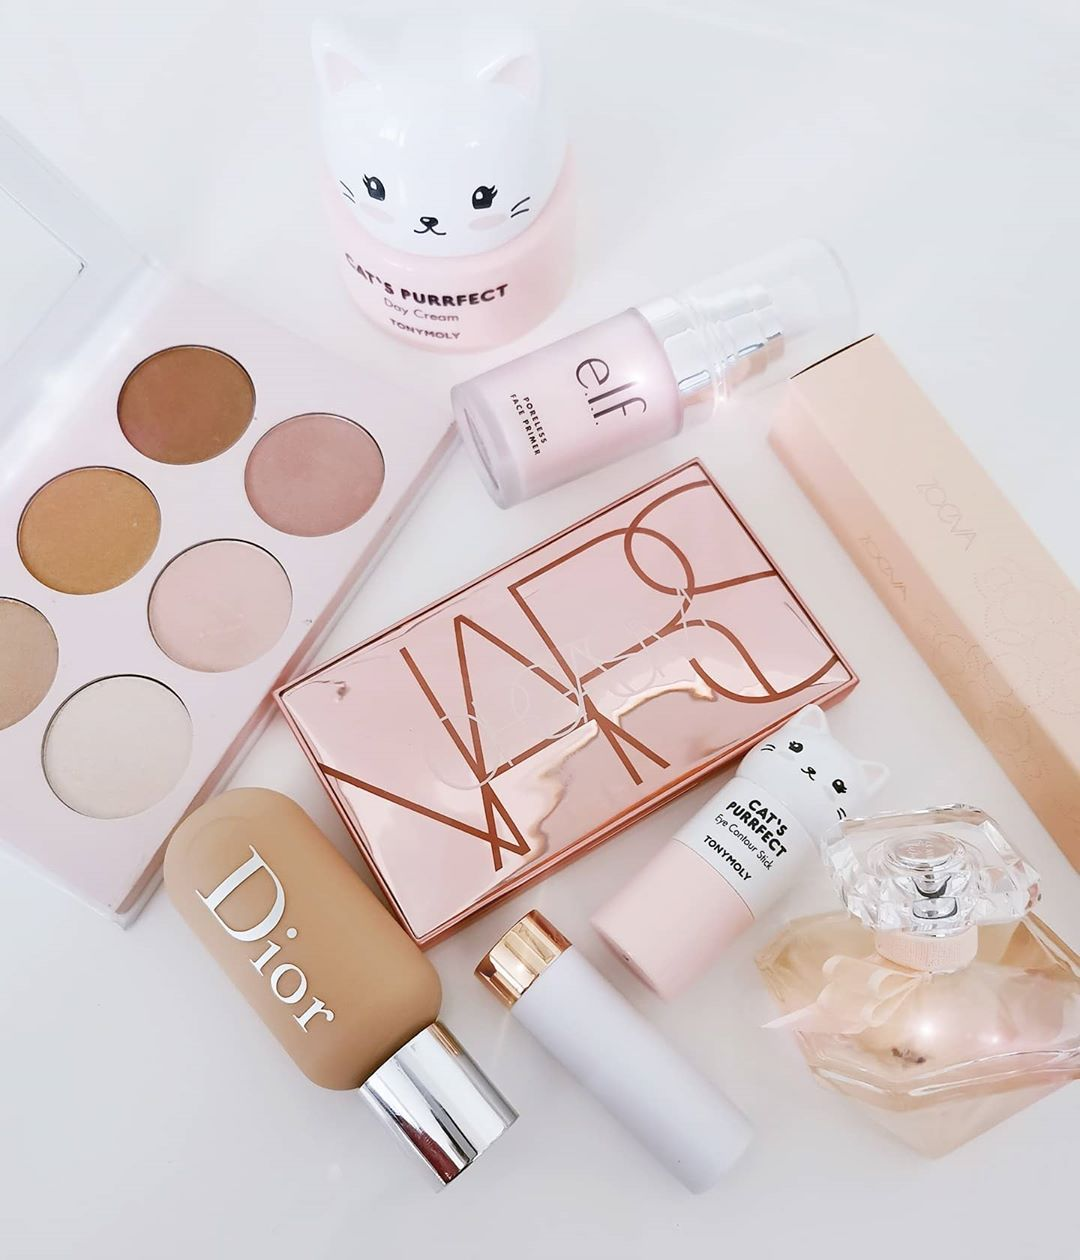 Still Obsessed With These Cute Tony Moly Makeupflatlay - Makeup Products